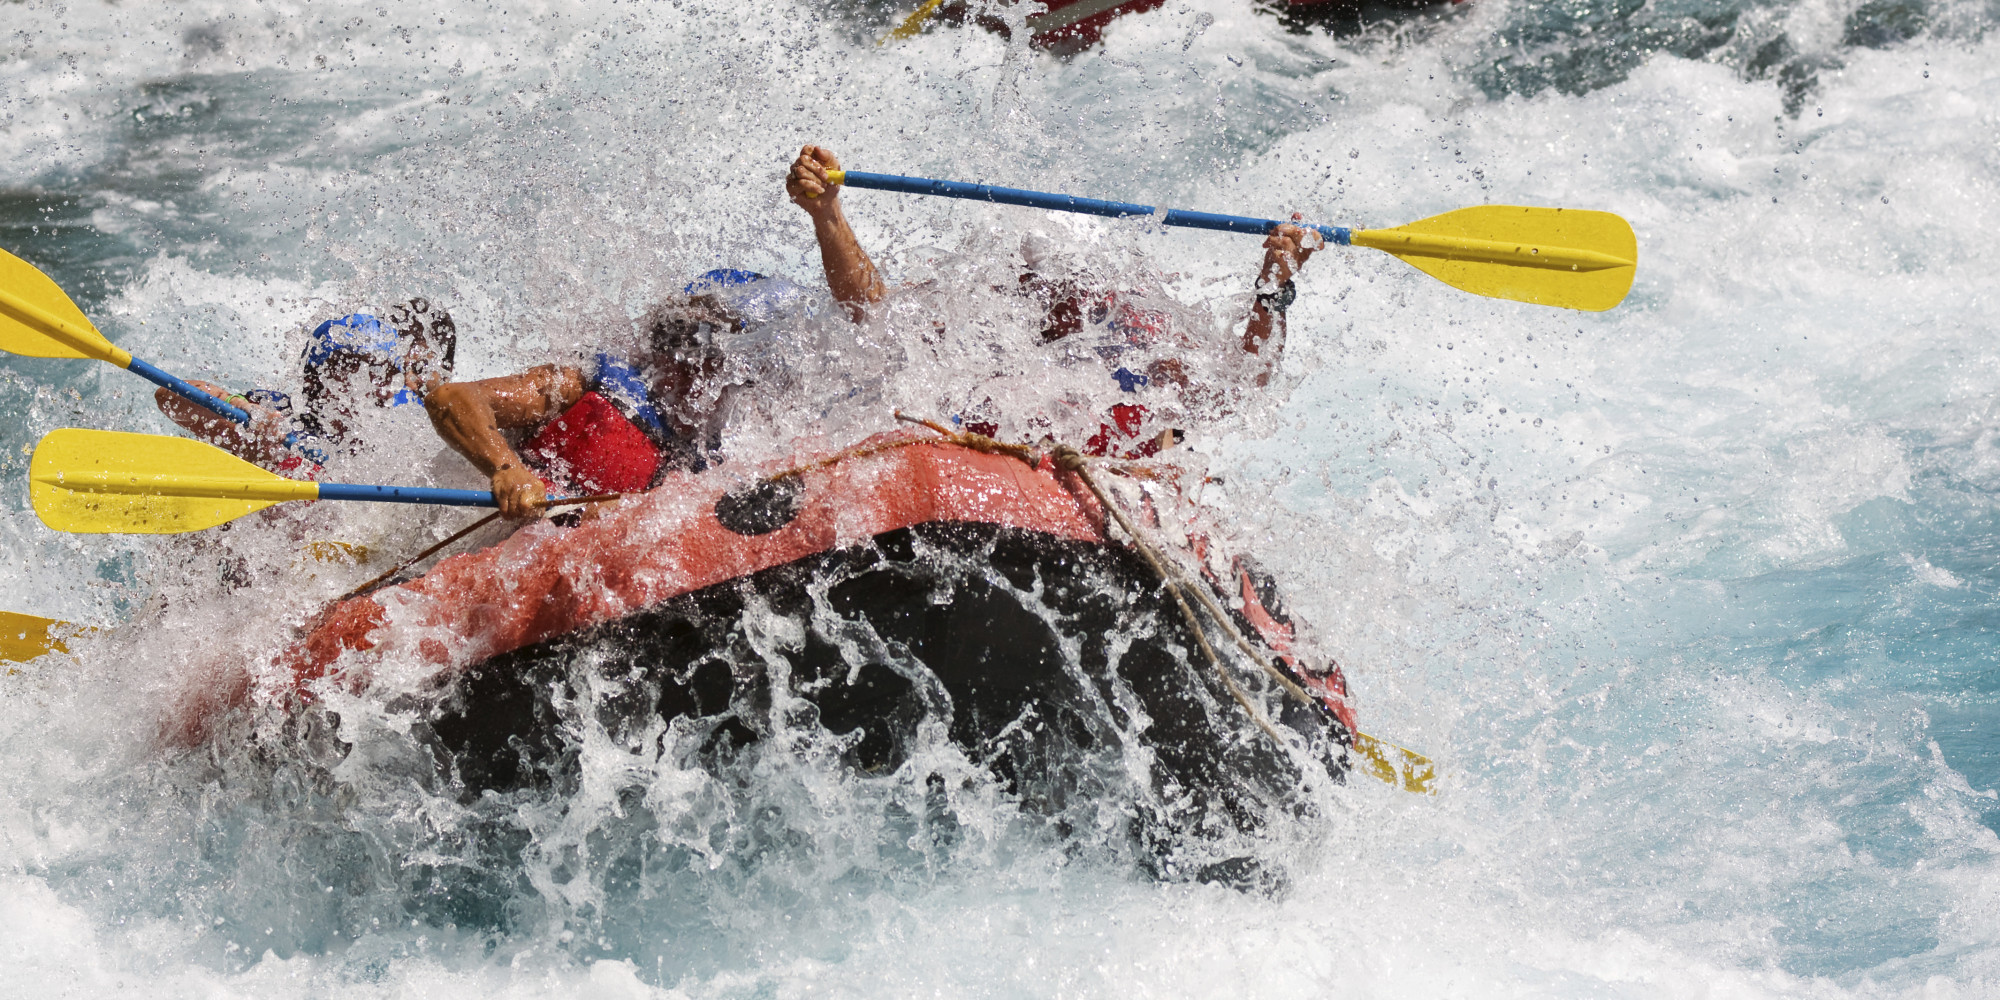 3 Parenting Lessons I Learned From White Water Rafting